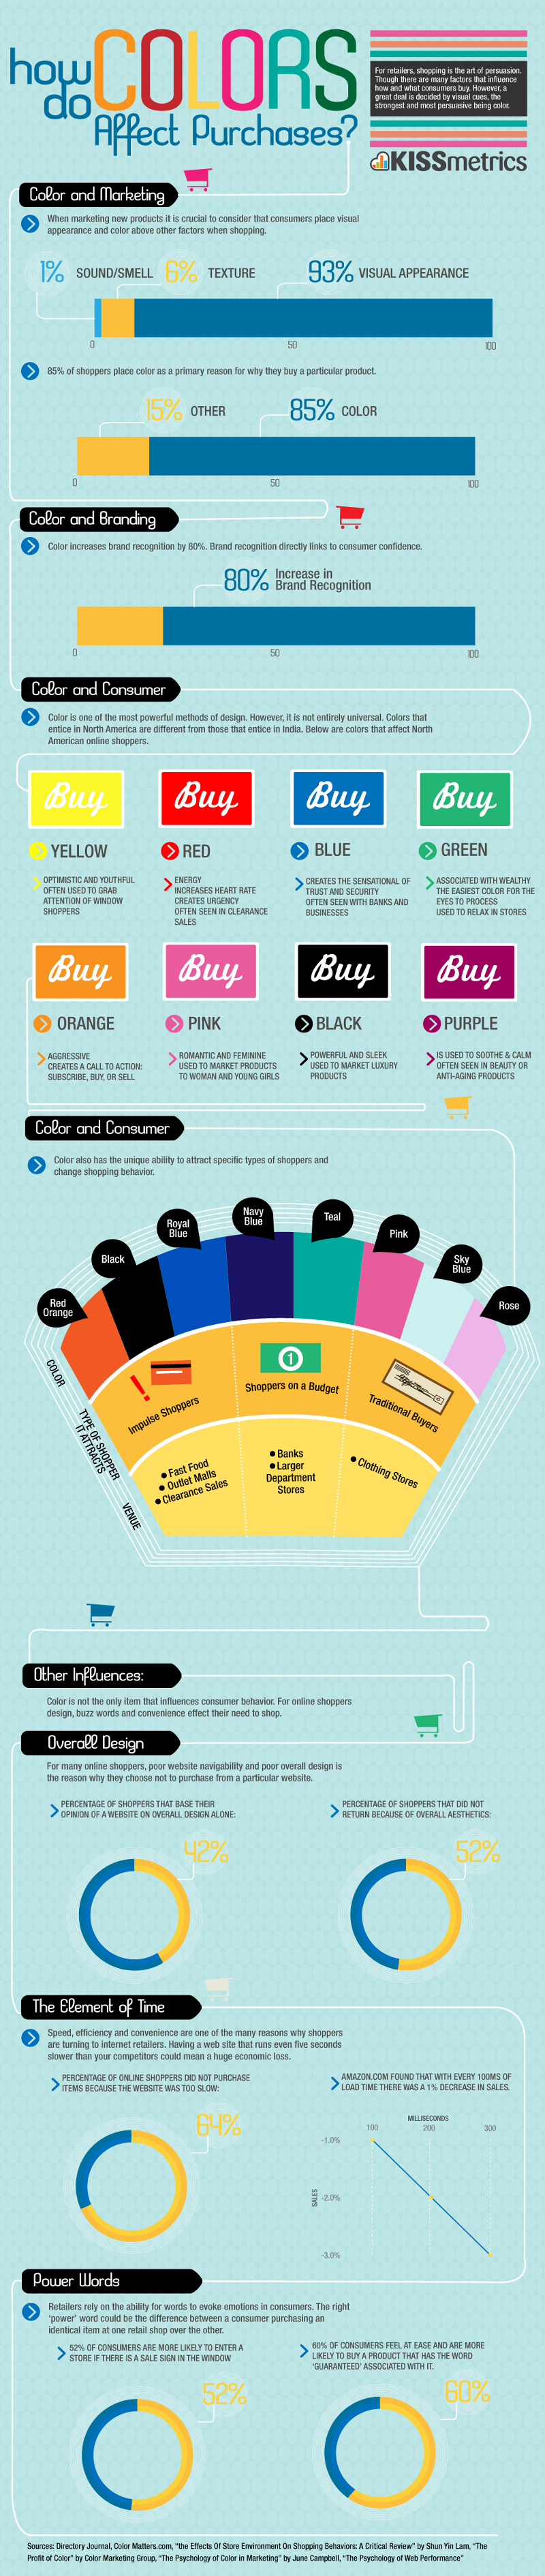 How Colors Affect Purchasing Behaviors